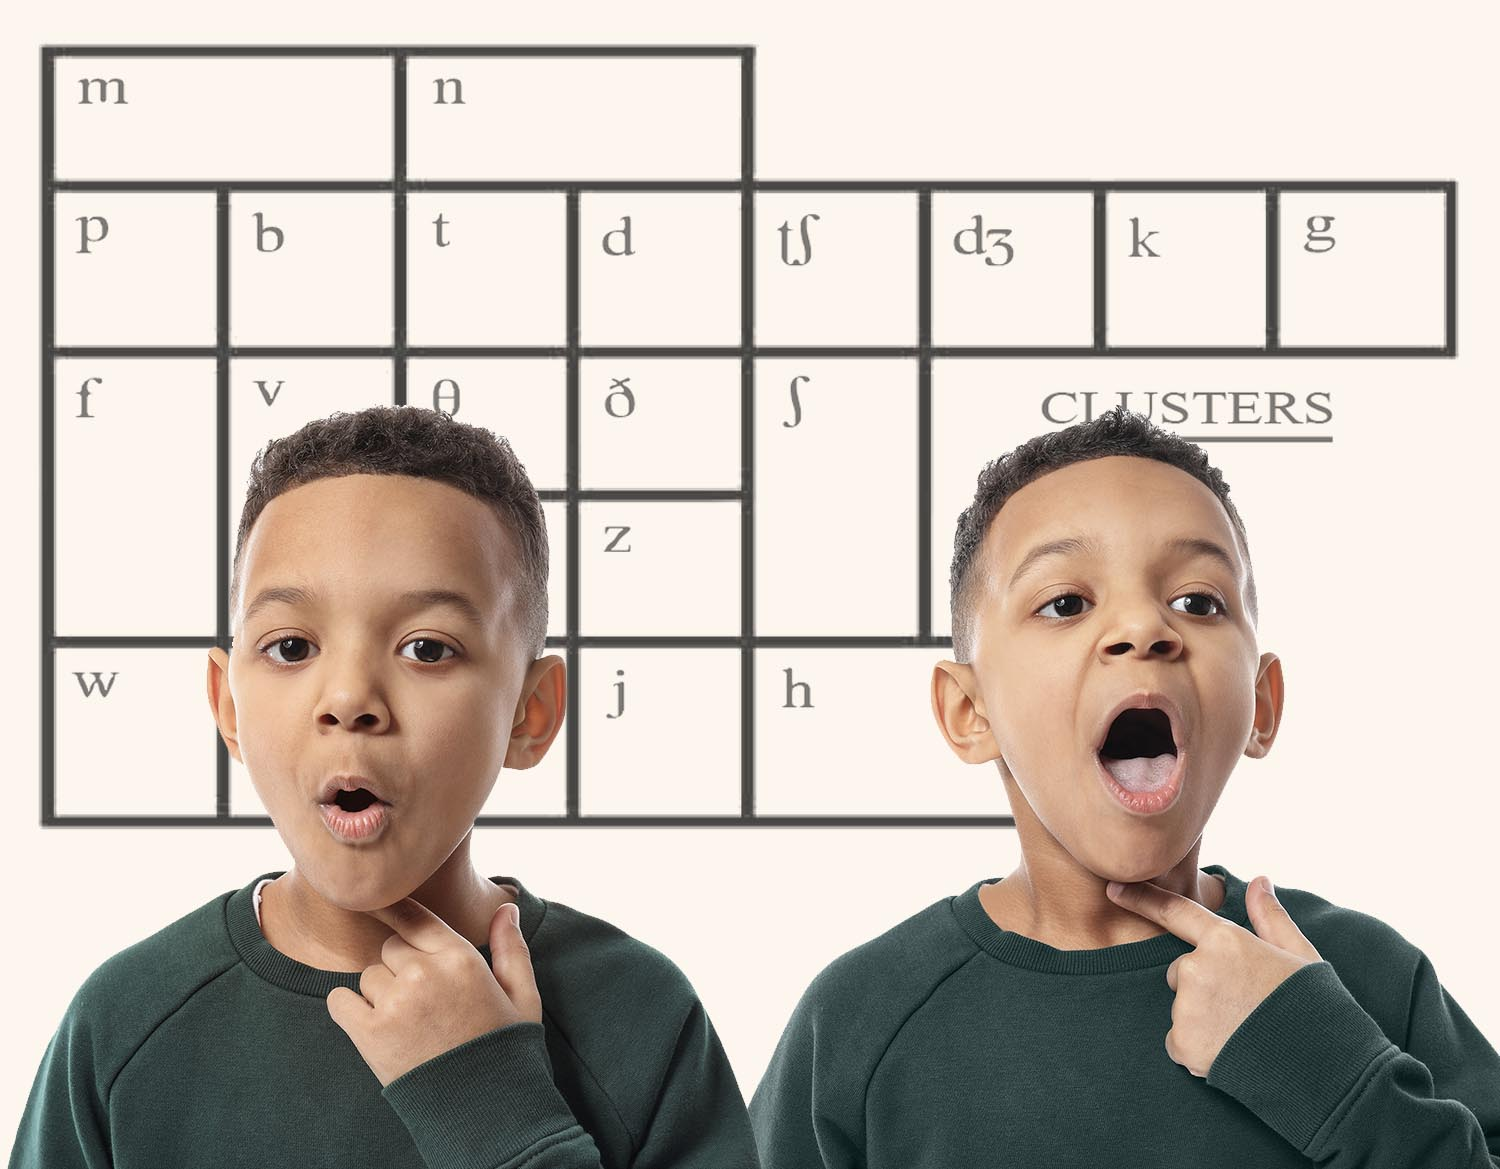 Child Speech Language Therapy with Charting